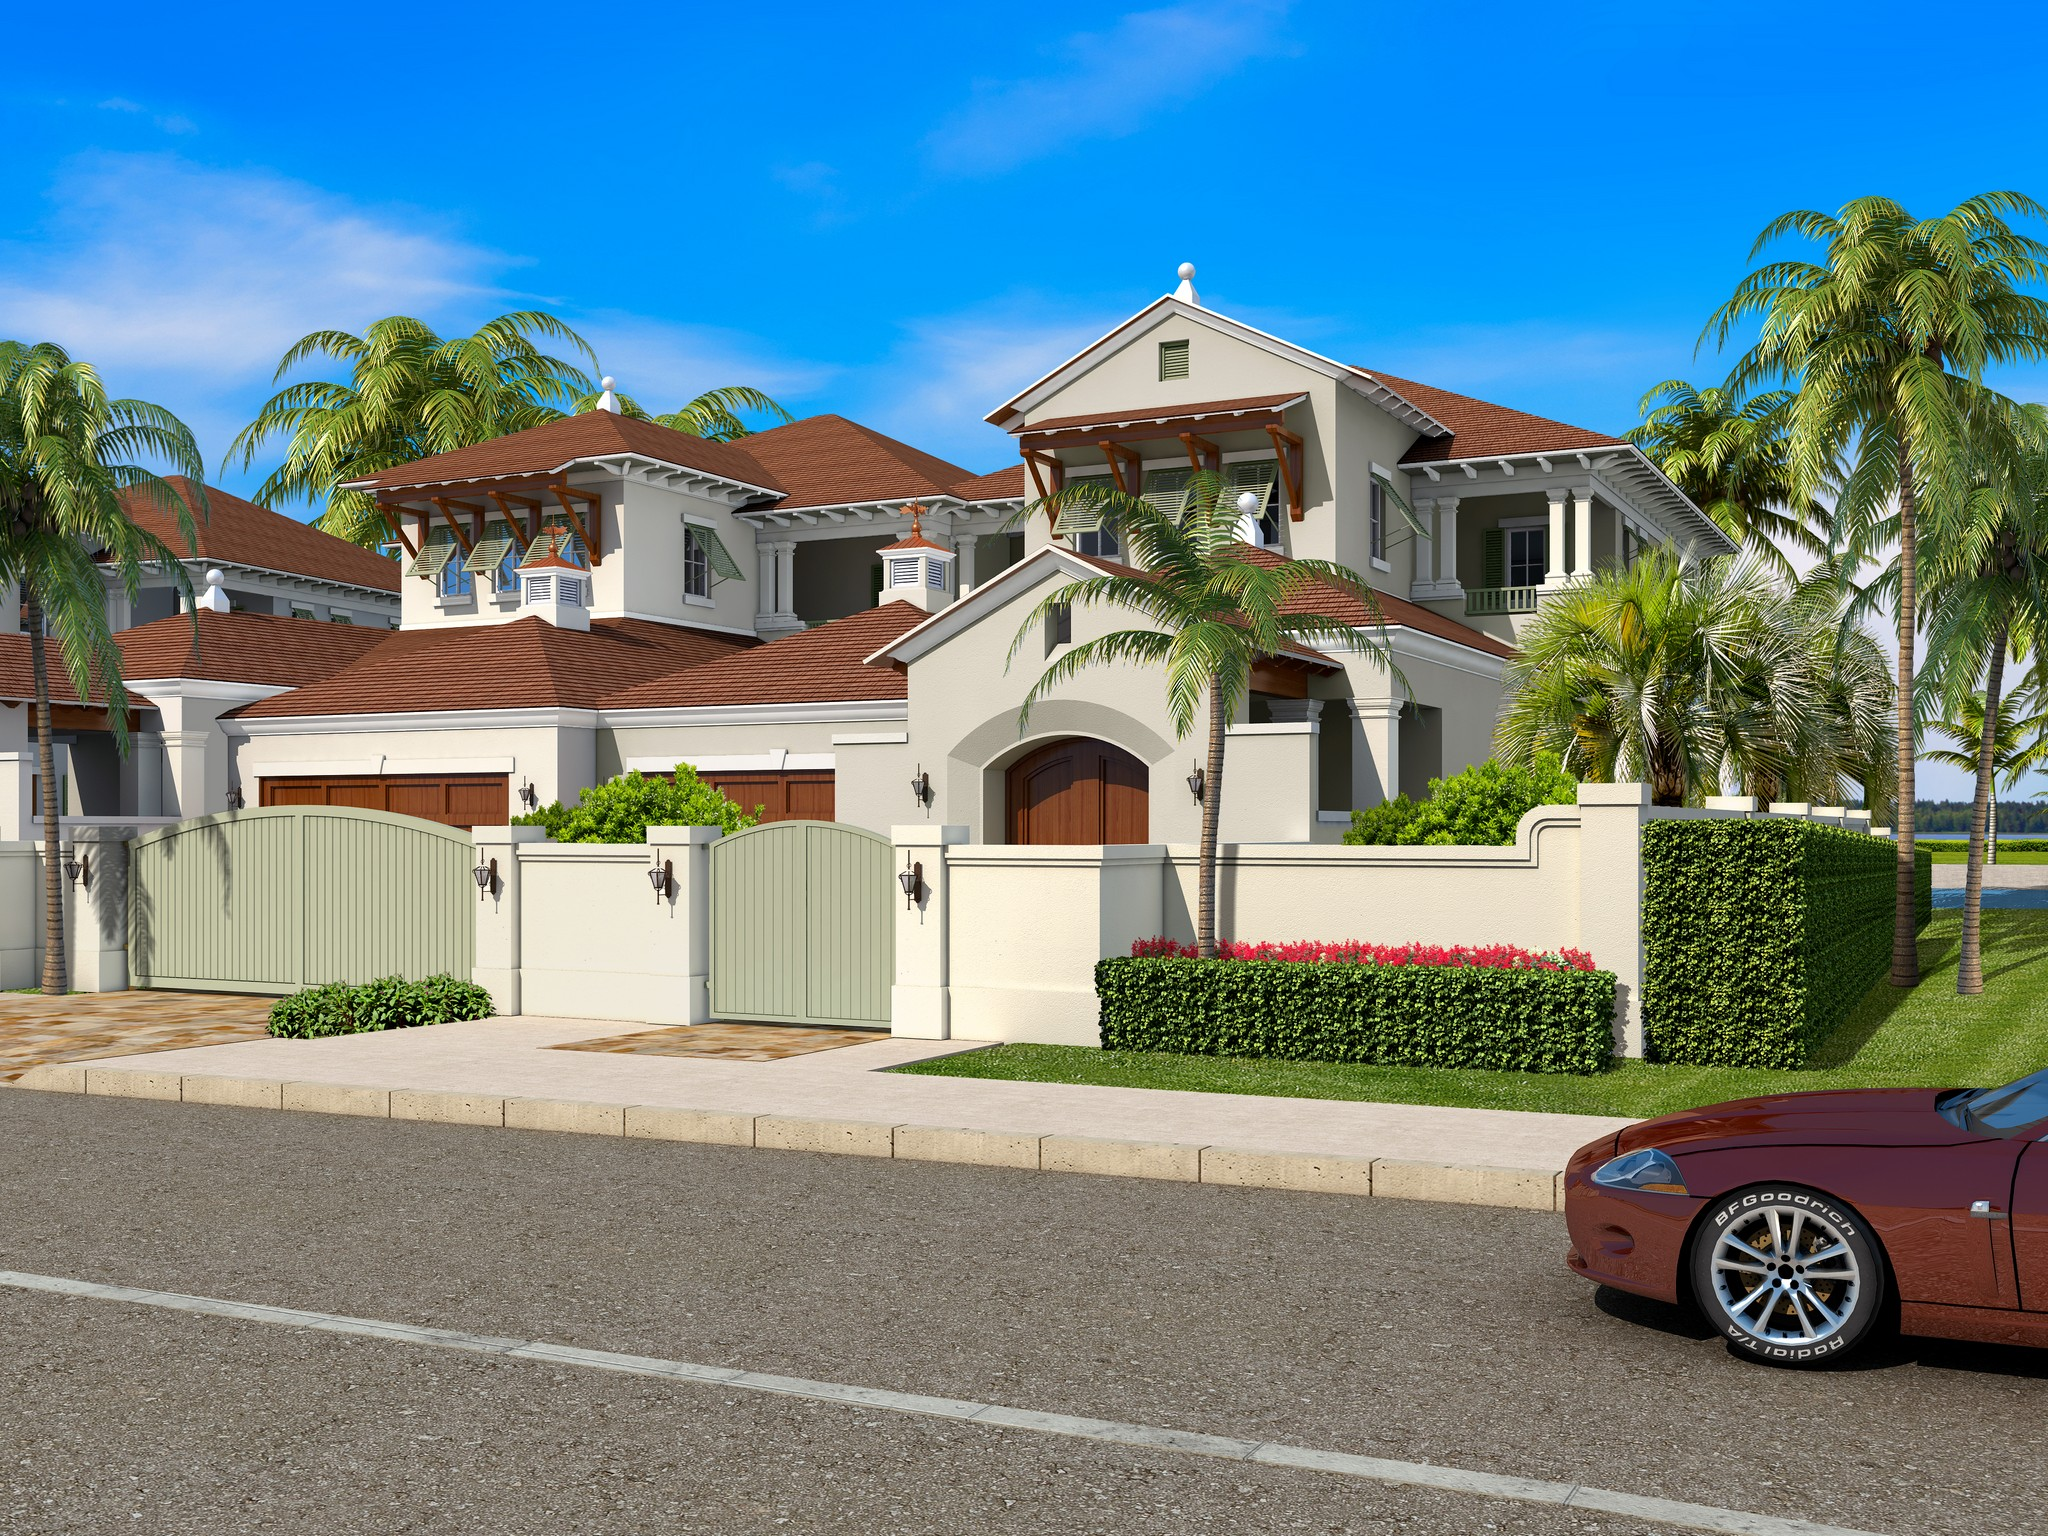 Villetta a schiera per Vendita alle ore Luxurious Riverfront Townhome on Royal Palm Pointe 21-D Royal Palm Pointe Vero Beach, Florida, 32960 Stati Uniti